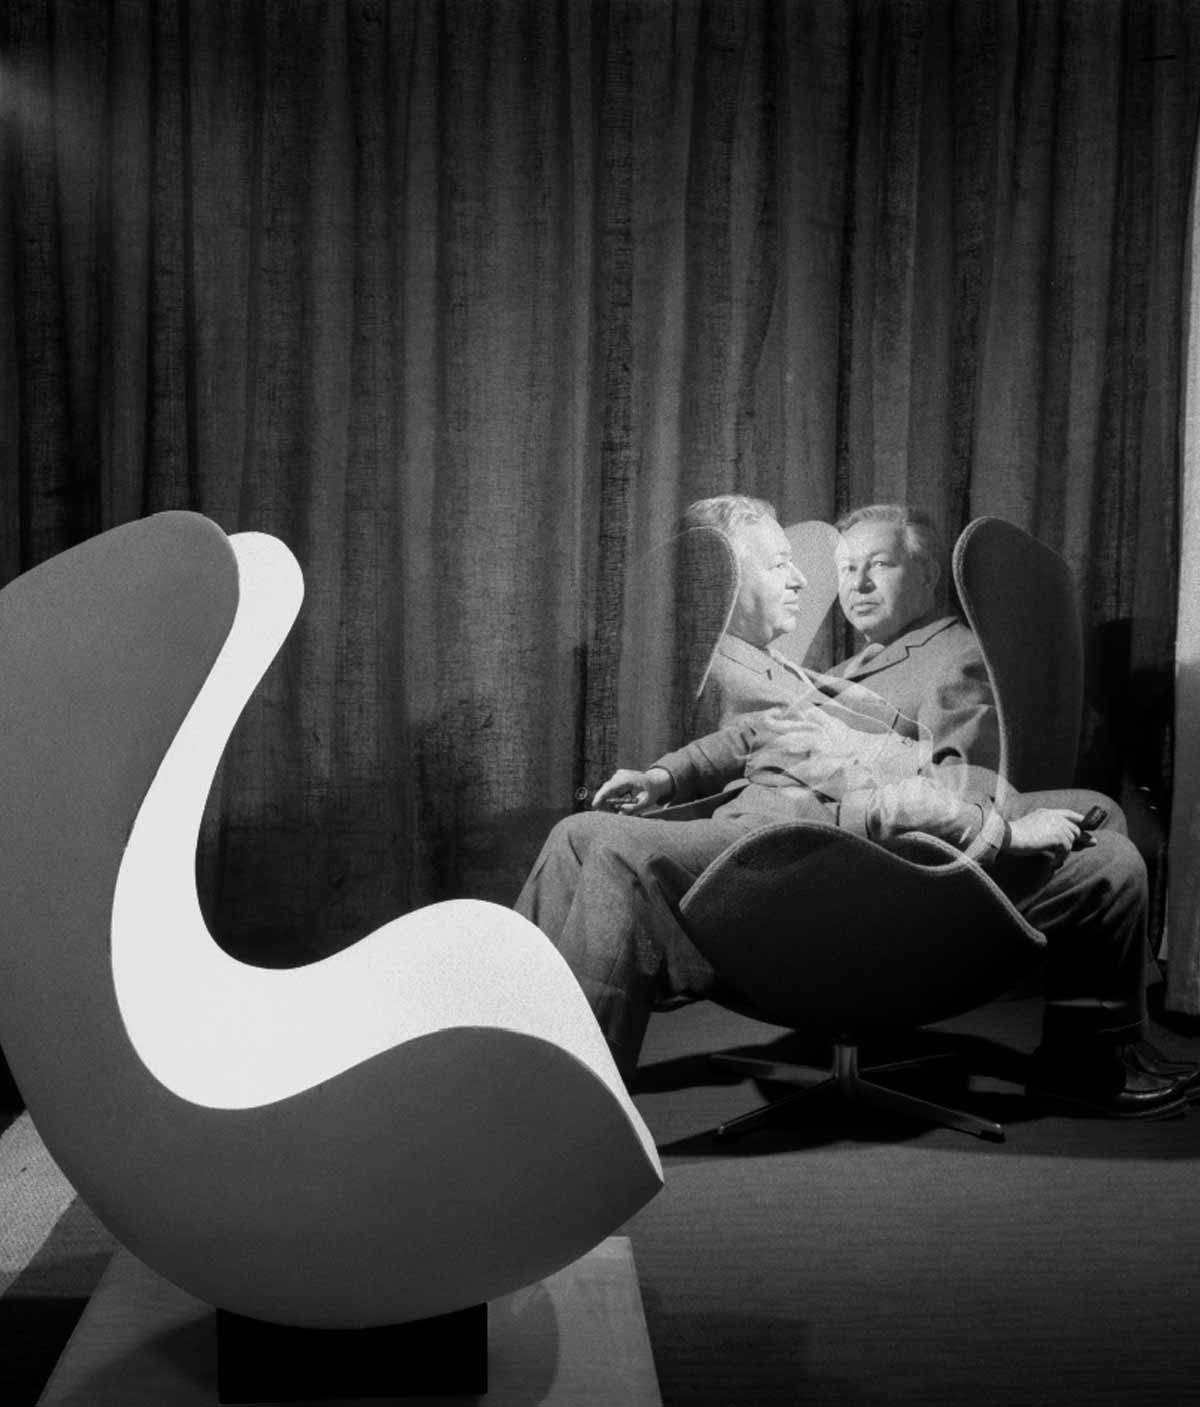 Arne Jacobson demonstrates his seminal Egg Chair